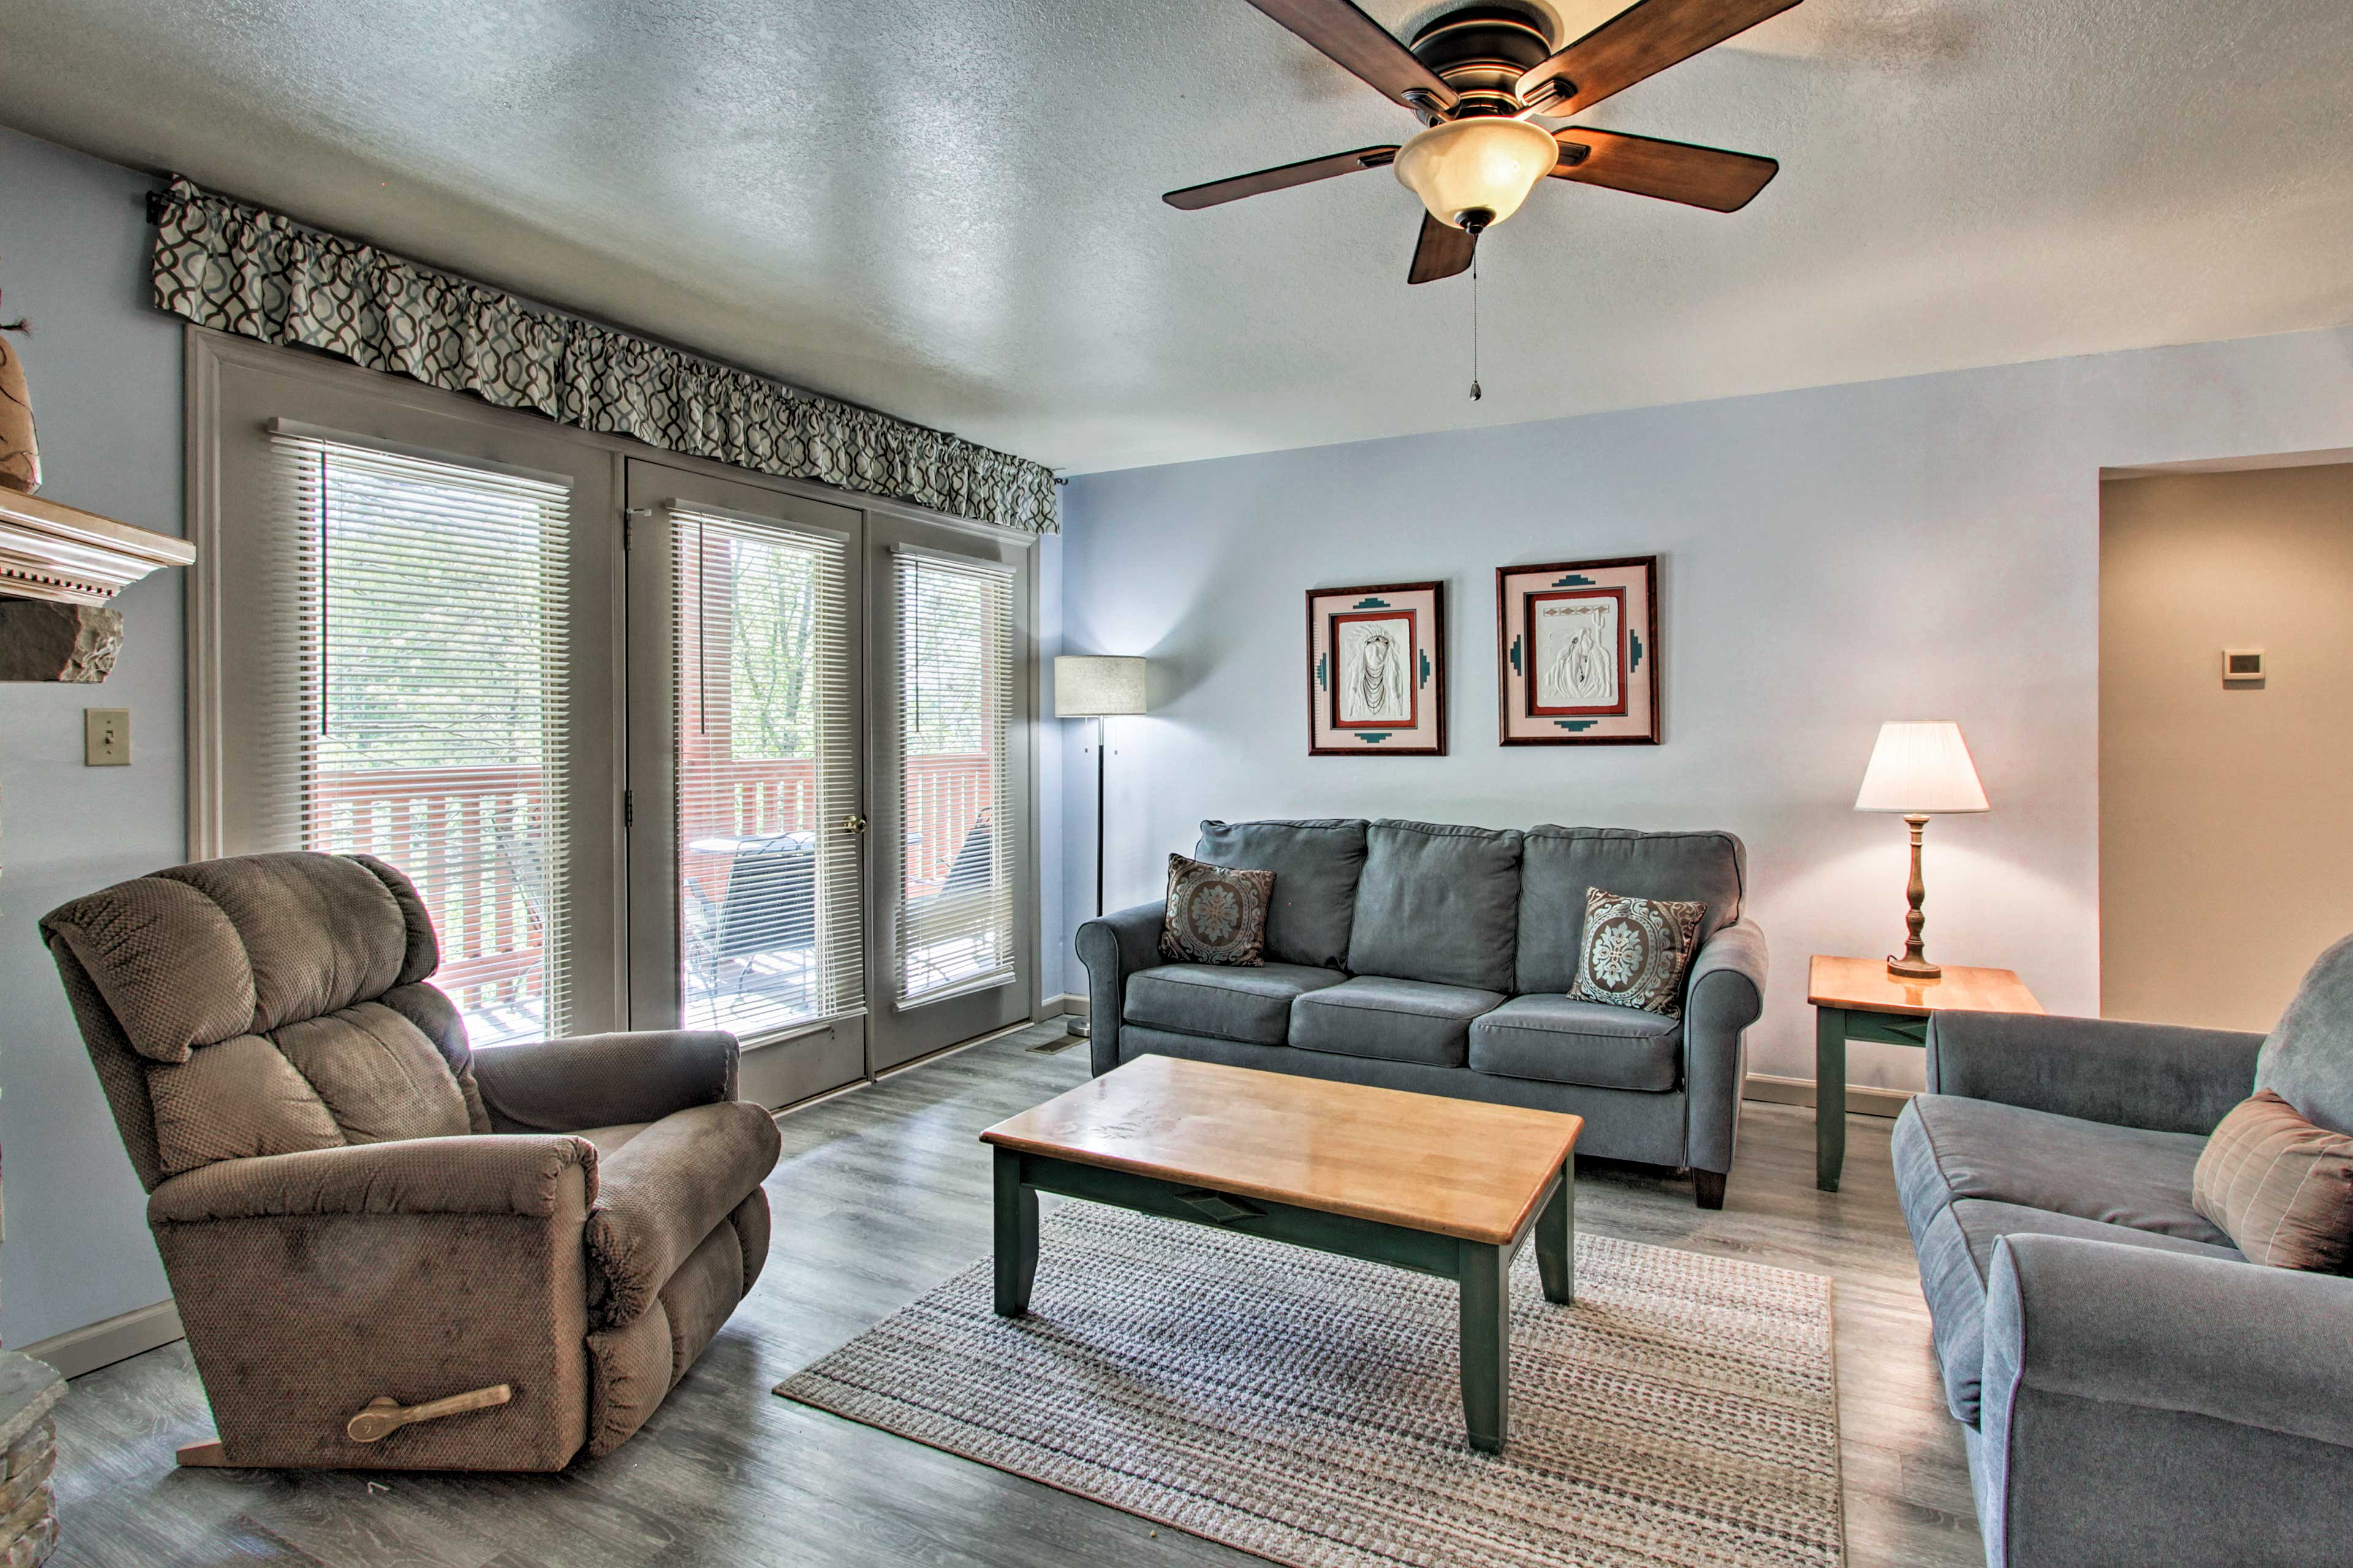 Claim a spot on the comfortable sofa or love seat.